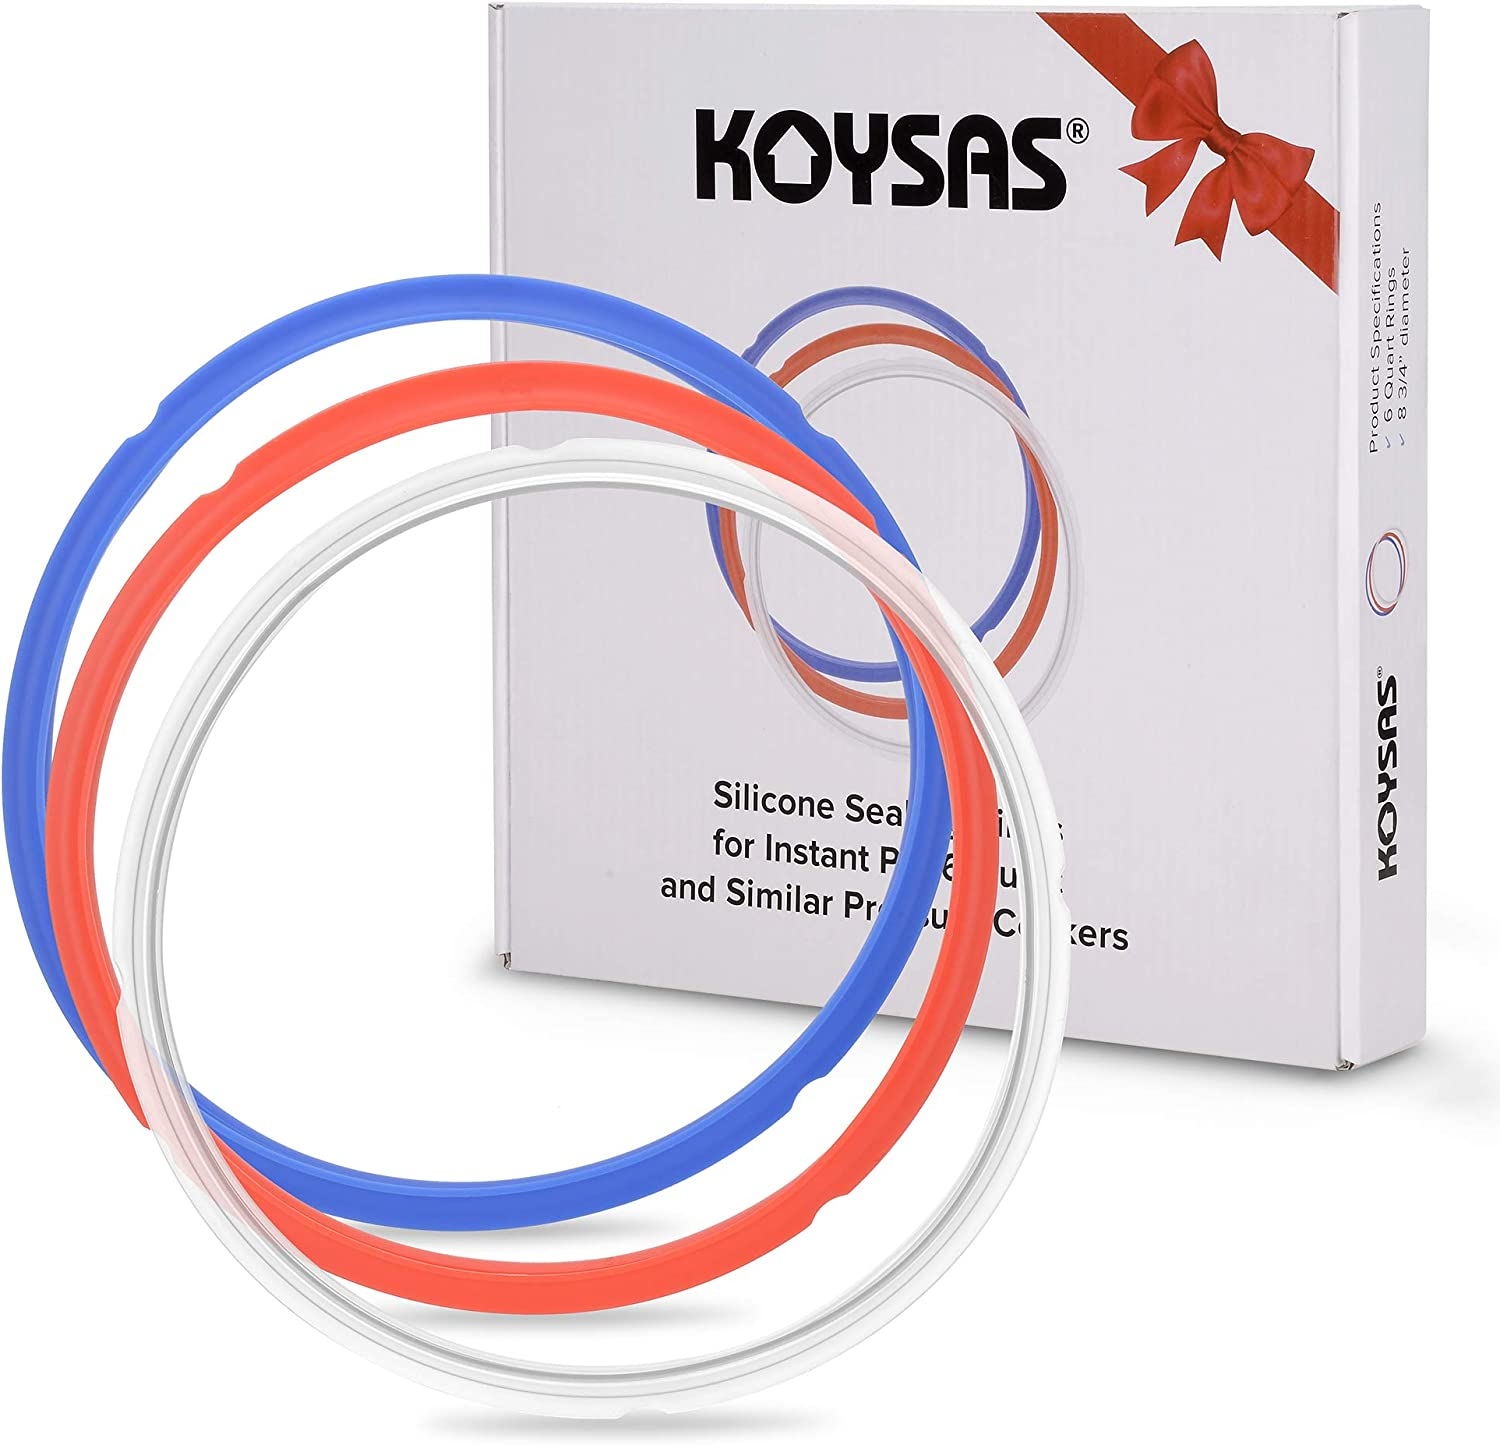 KOYSAS Silicone Sealing Rings for 6 Quart Instant Pot - Pack of 3 Colored Rings - Blue, Red and Clear - Easy Clean for Instapot and Similar 6Qt Pressure Cookers - Gift Quality Packaging